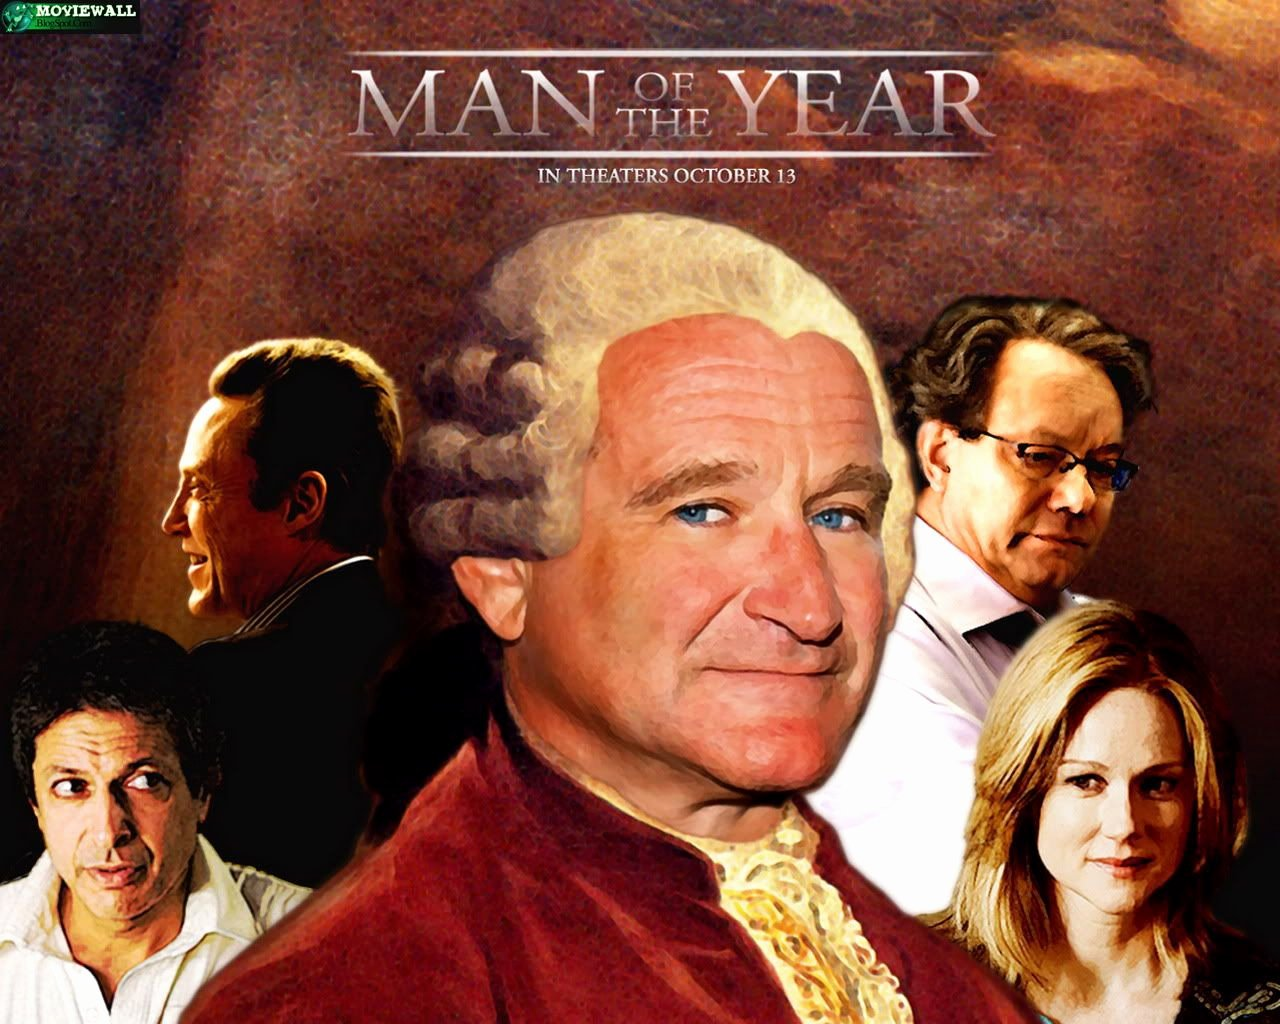 Man Of the Year Movie Online New Moviewall Movie Posters Wallpapers & Trailers Man Of